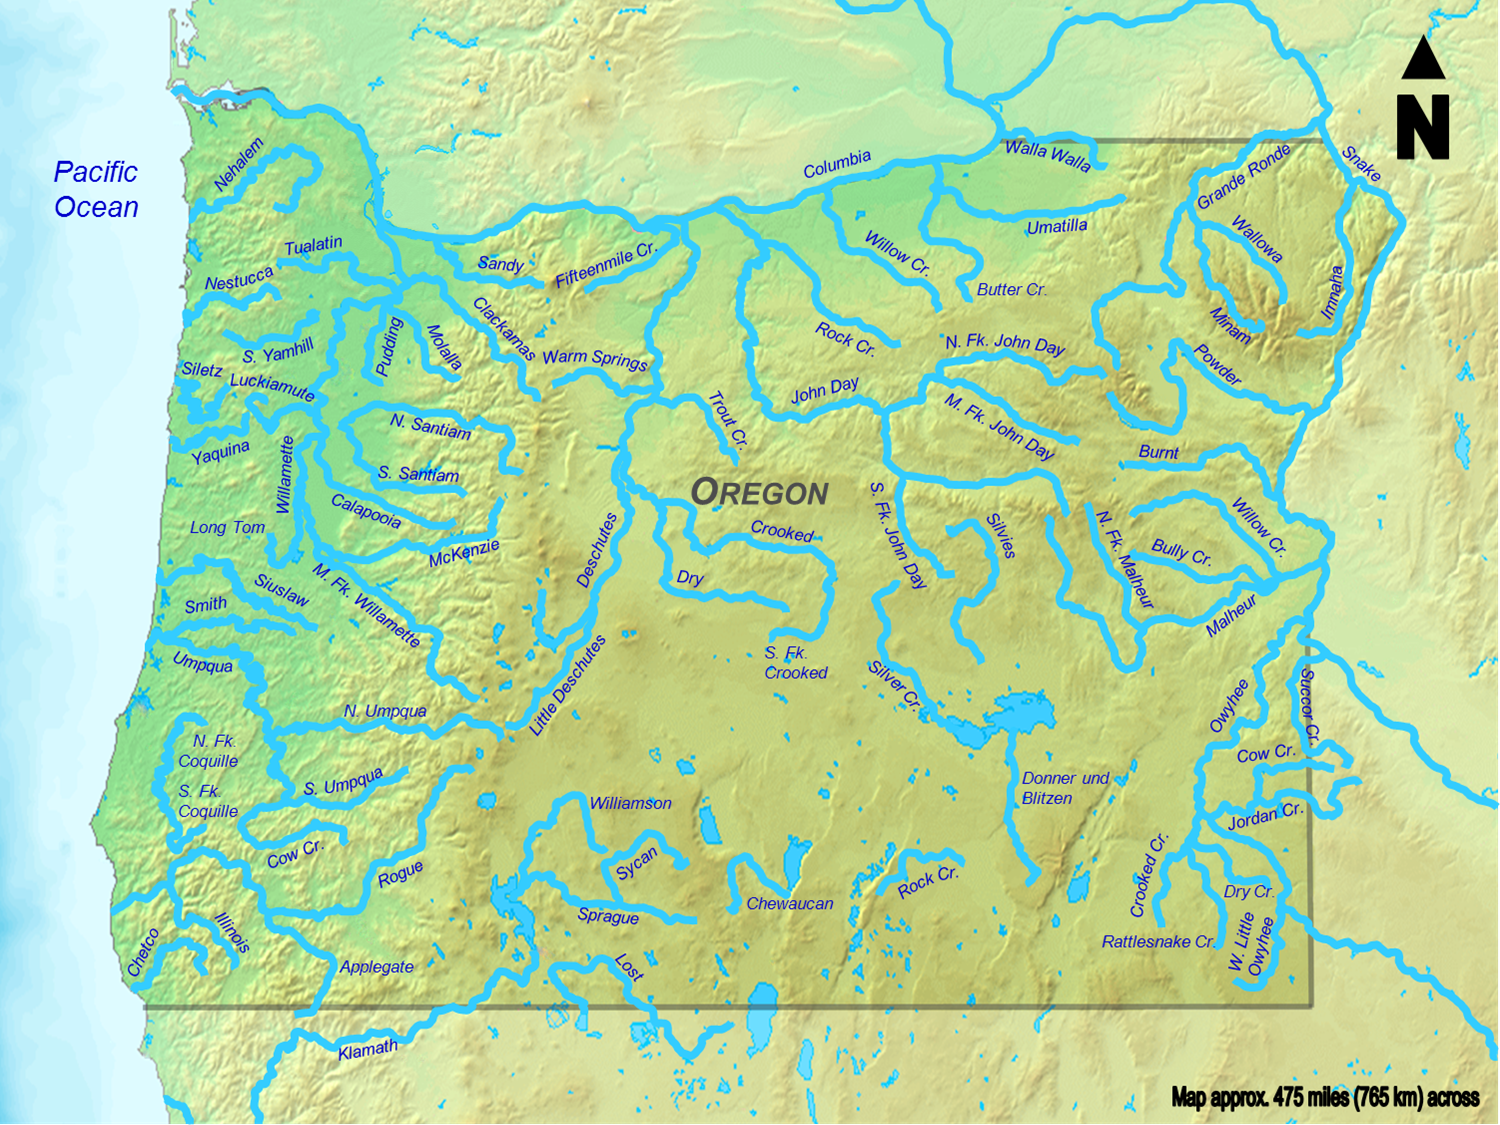 File:Oregon Rivers.png   Wikimedia Commons